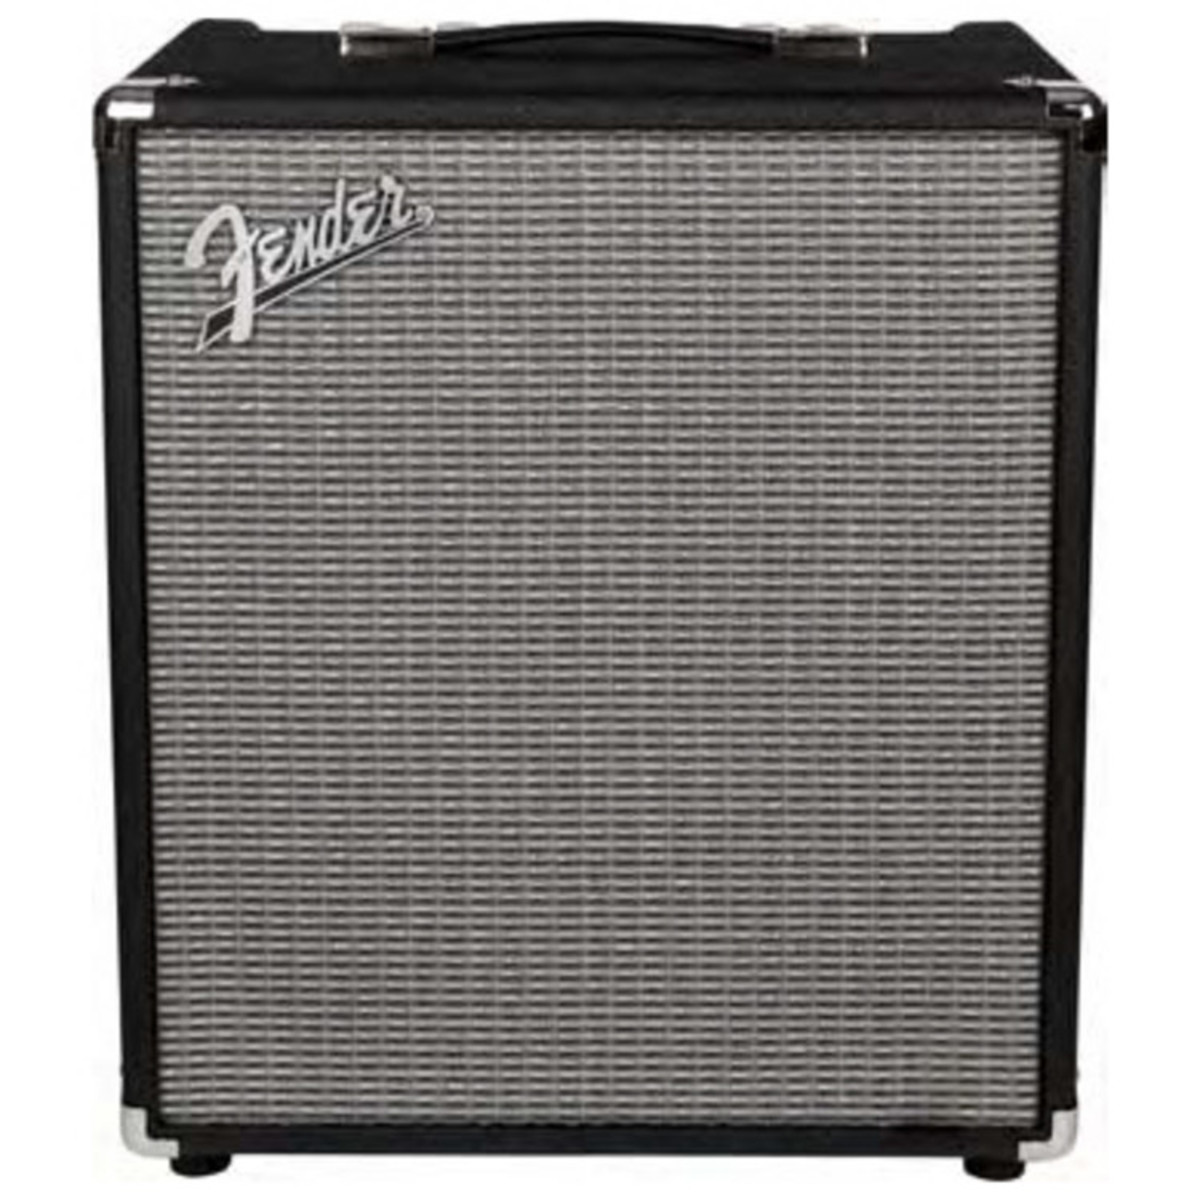 fender rumble 100 1x12 bass combo amp box opened at. Black Bedroom Furniture Sets. Home Design Ideas